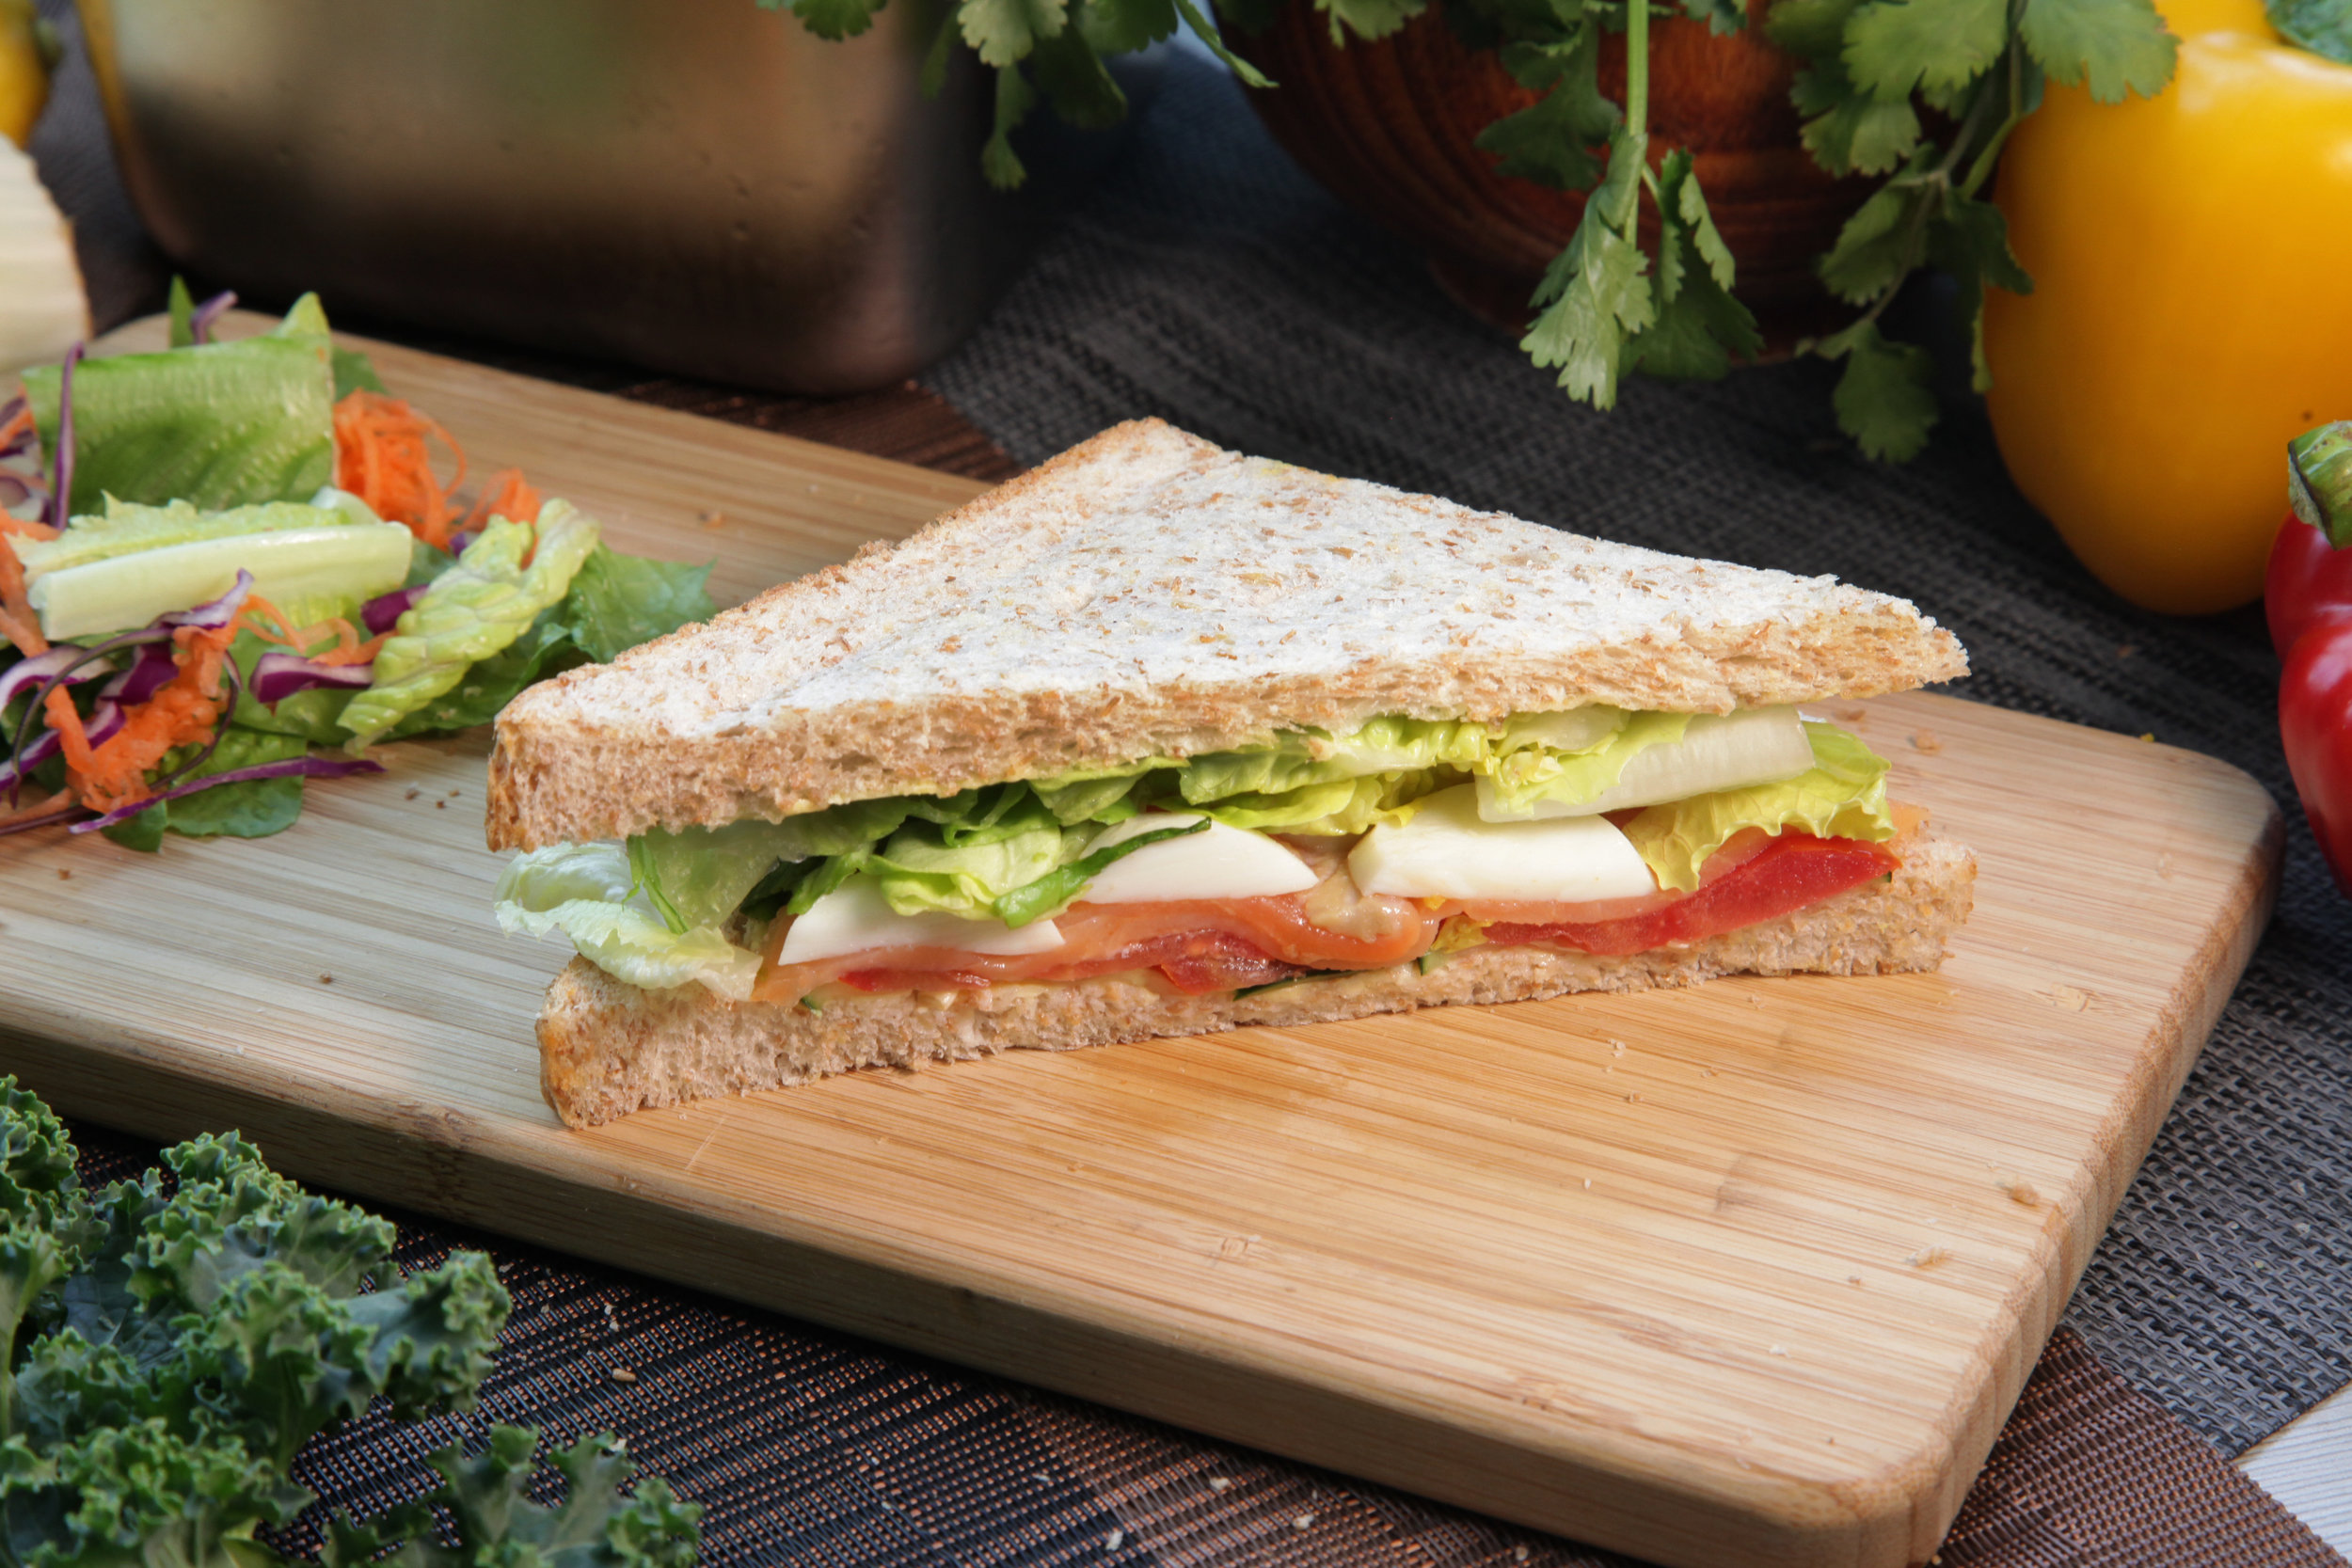 SMOKED SALMON SANDWICH - 208.18 KCAL PER SERVINGSmoked Salmon, Tomato, Cucumber, Egg, Lettuce Butter, Whole Wheat Bread.$28